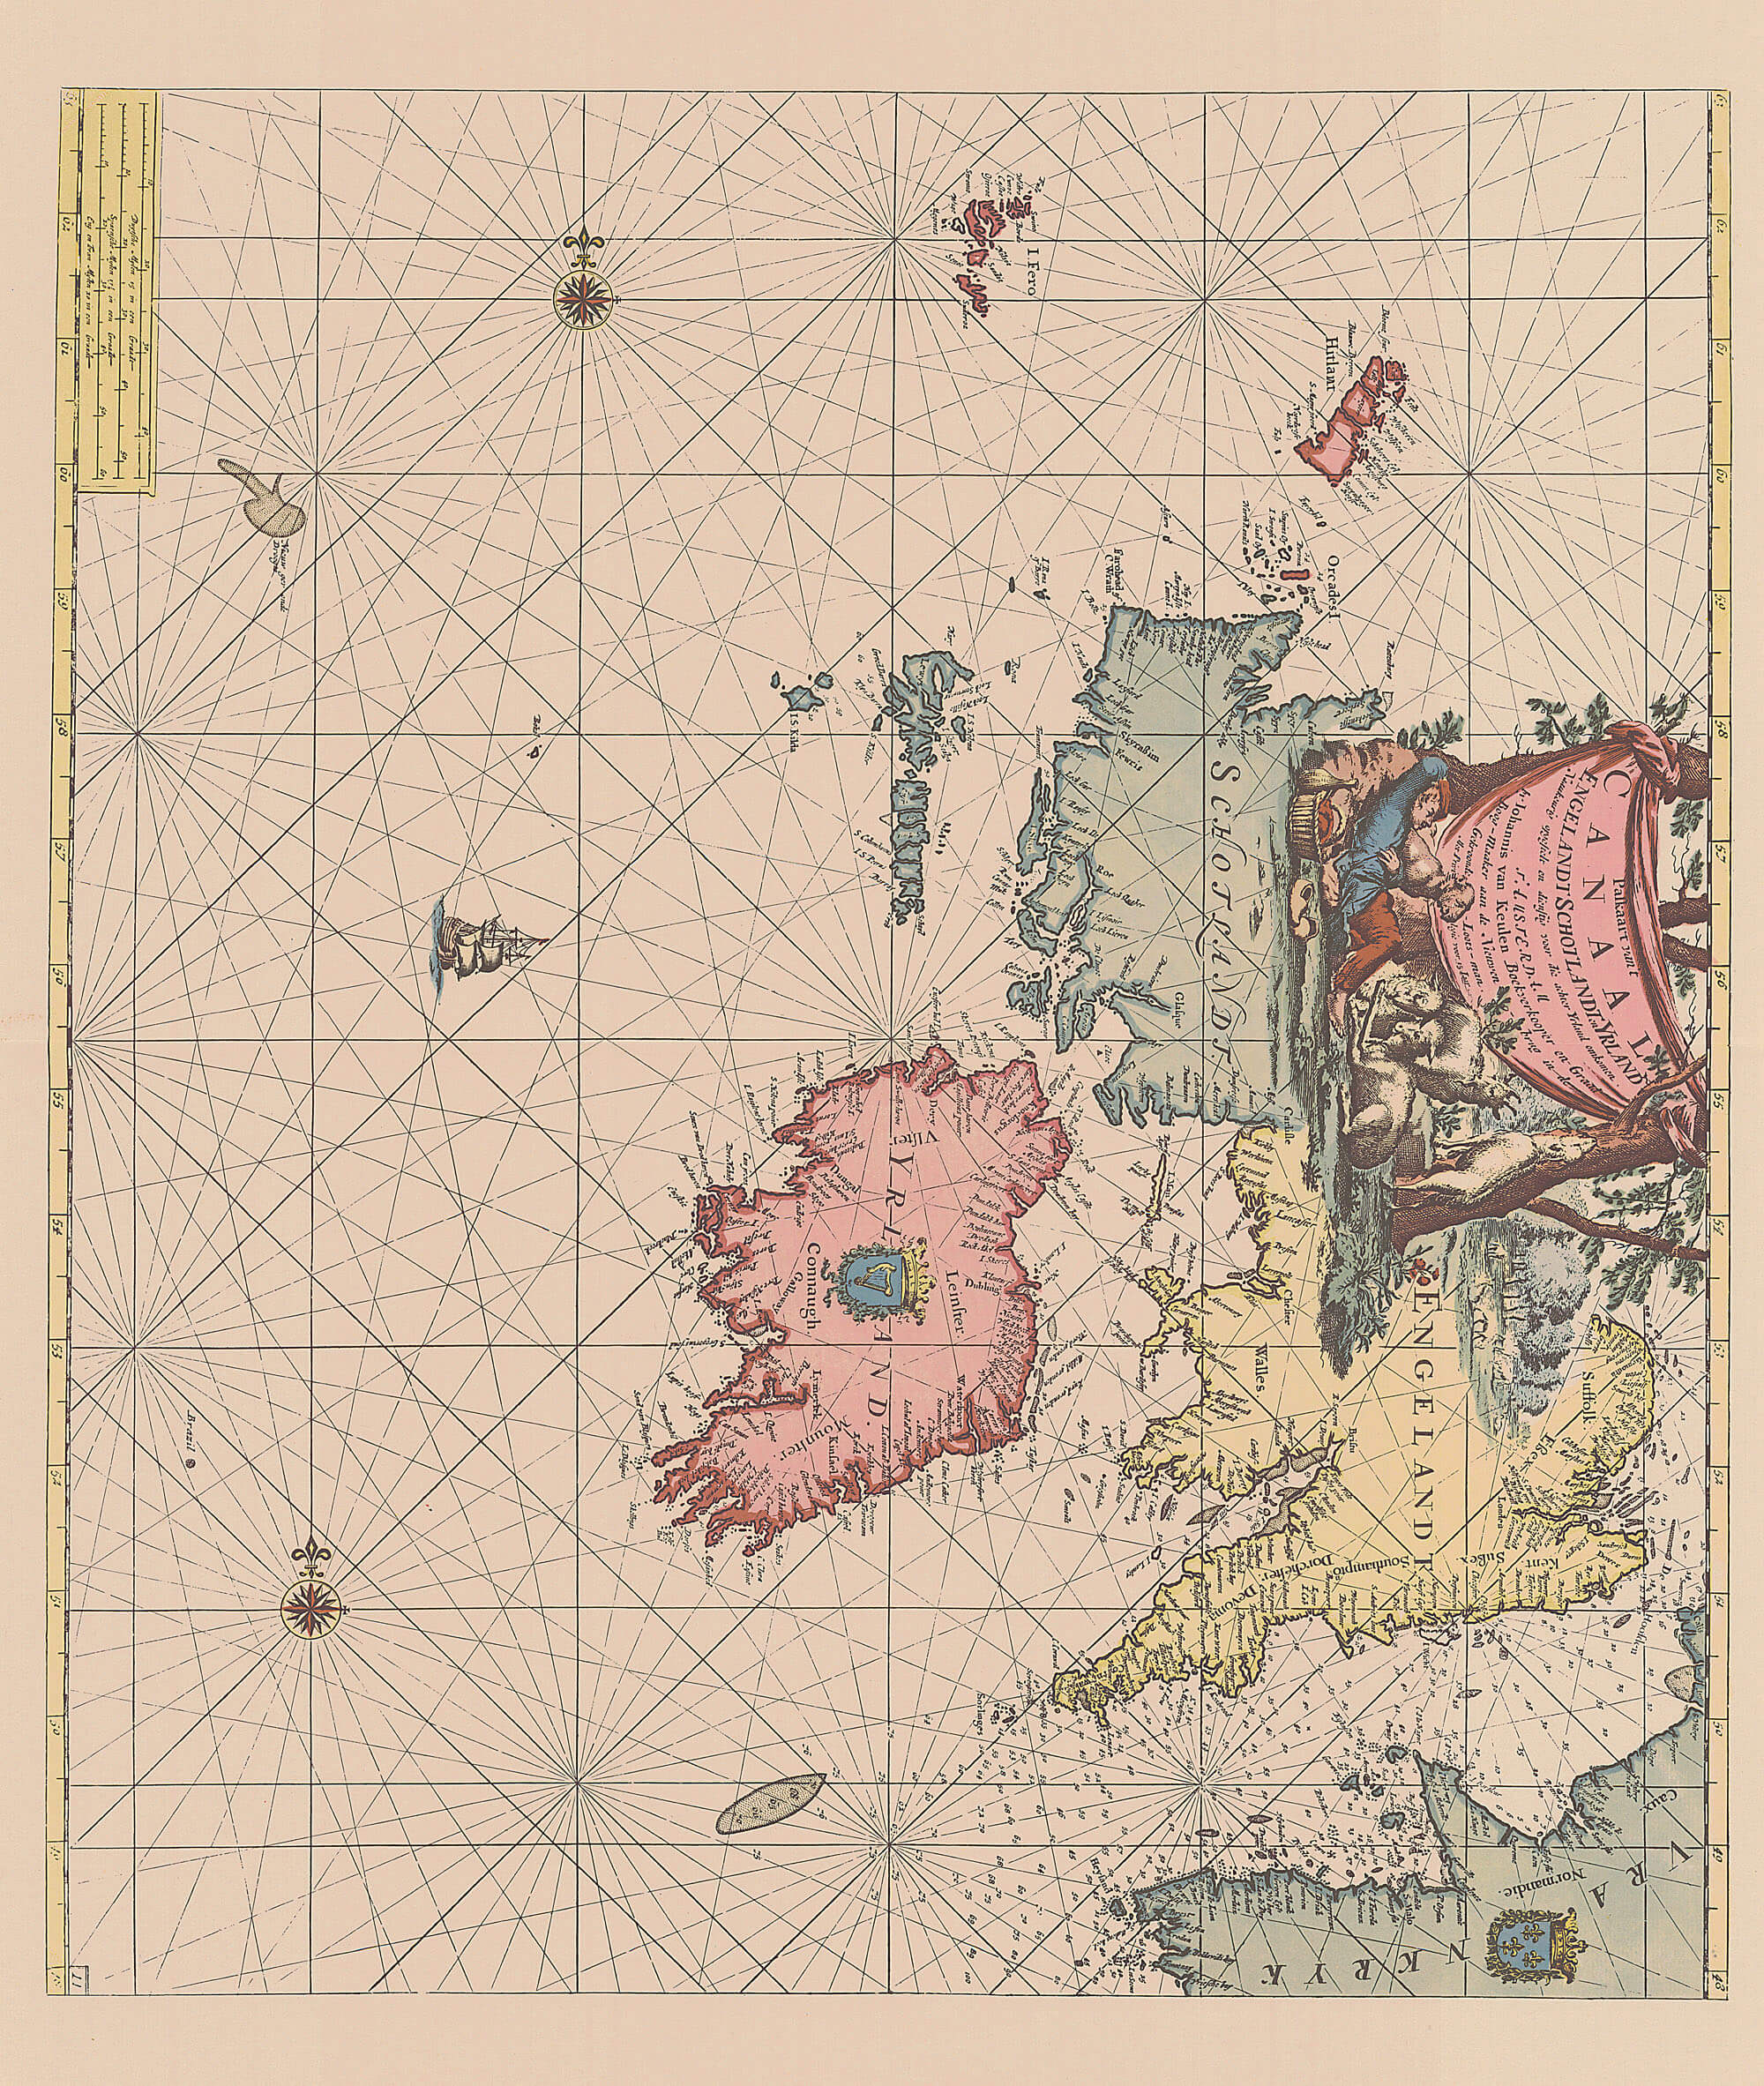 Ireland L Brown Collection - Sweden map 1800